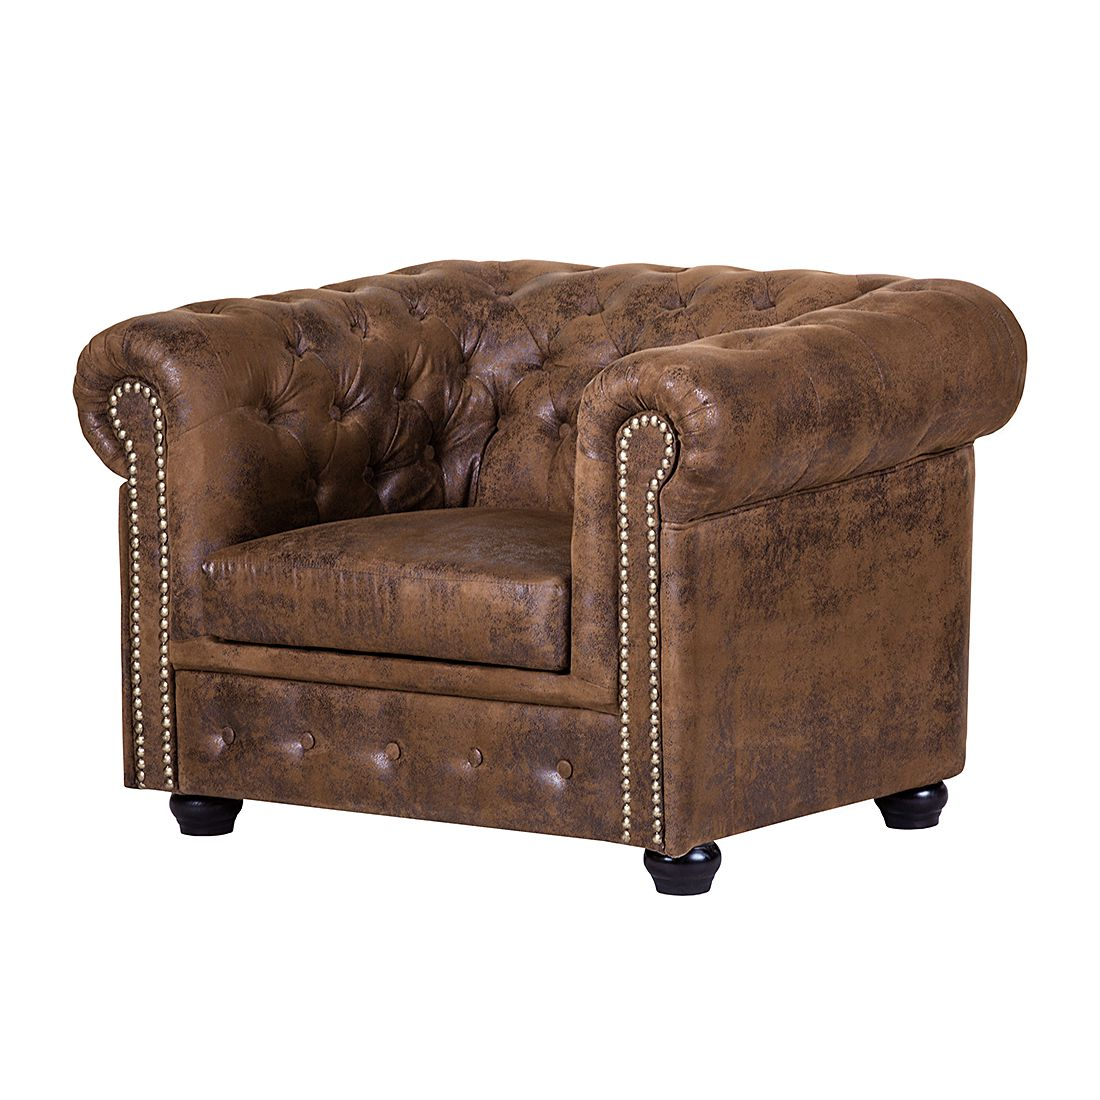 Chesterfield Sessel Preis Top Chesterfield Sessel Unter 500 Cherry Möbel Home24 Otto